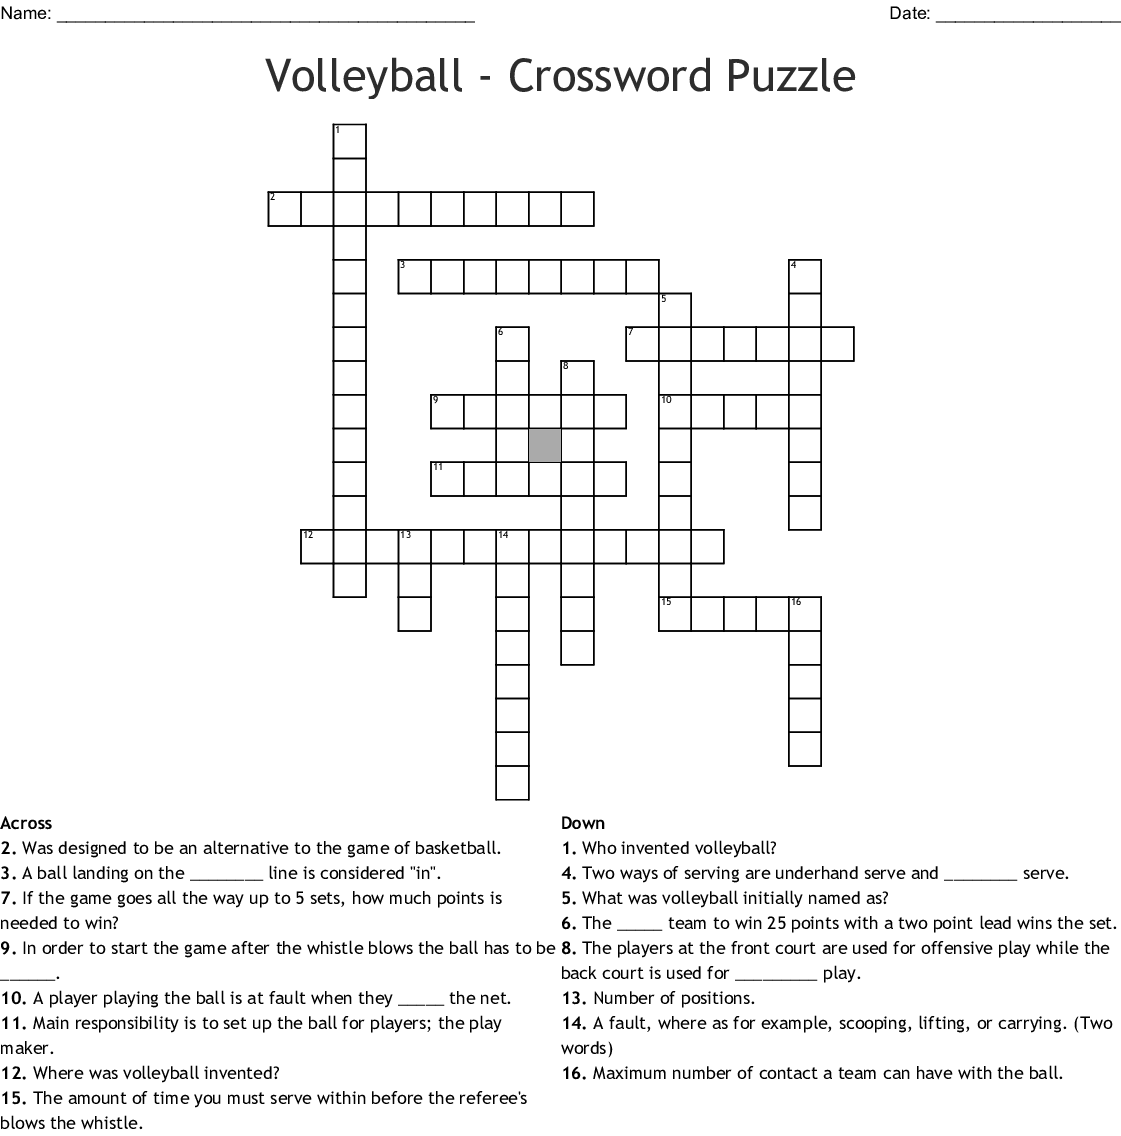 Worksheet Volleyball Crossword Puzzle Answers